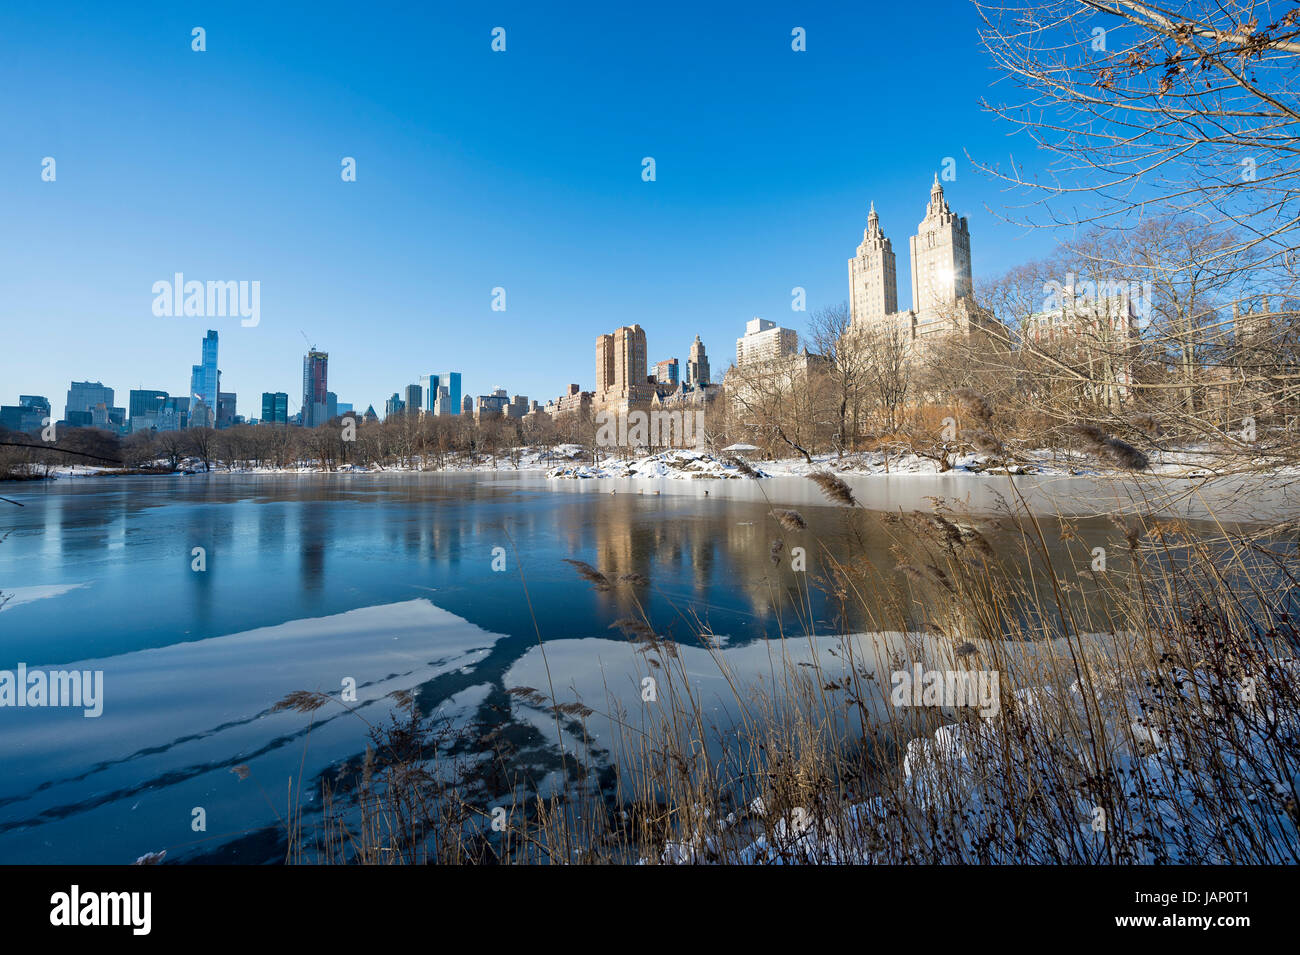 Vue panoramique de l'Upper West Side skyline se reflétant dans la glace du lac de Central Park après Photo Stock